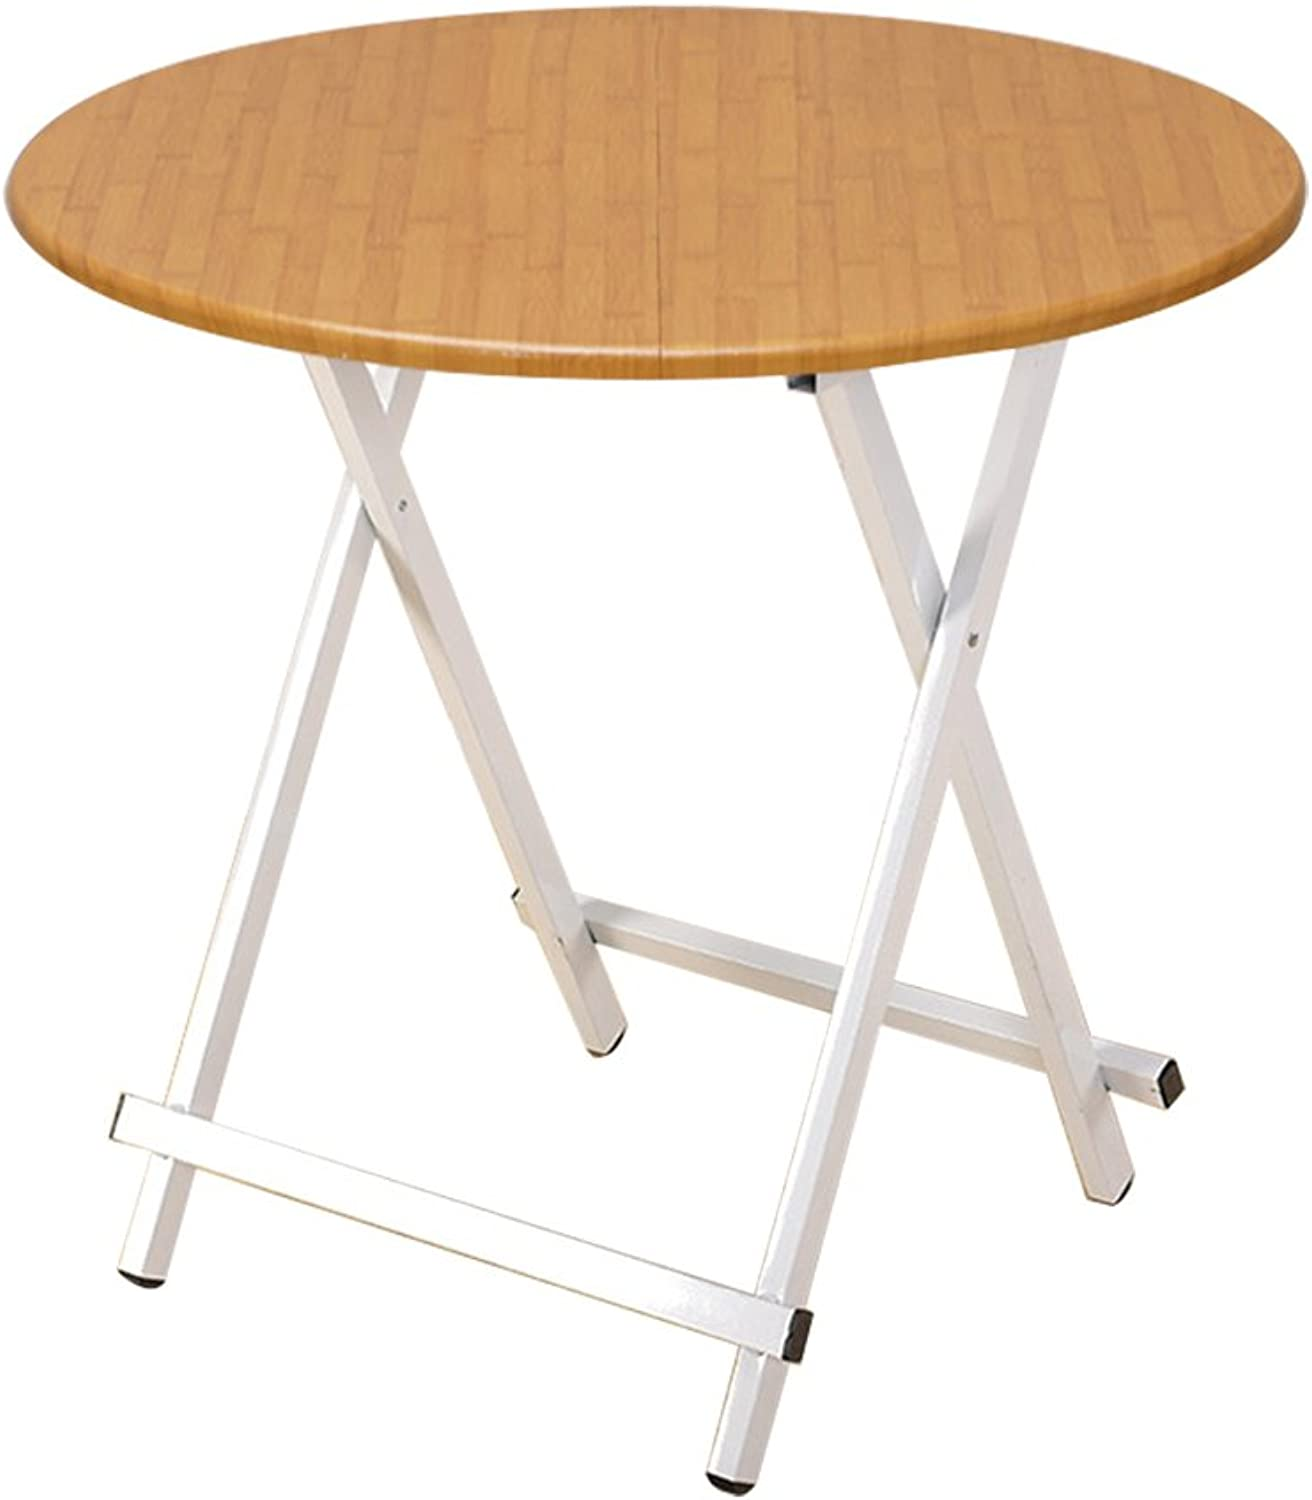 Folding Table Shaped Modern Minimalist Small Folding Table Household Telescopic Round Table Simple Coffee Table-7 colors (can Be Portable) == (color   B, Size   70x74cm)